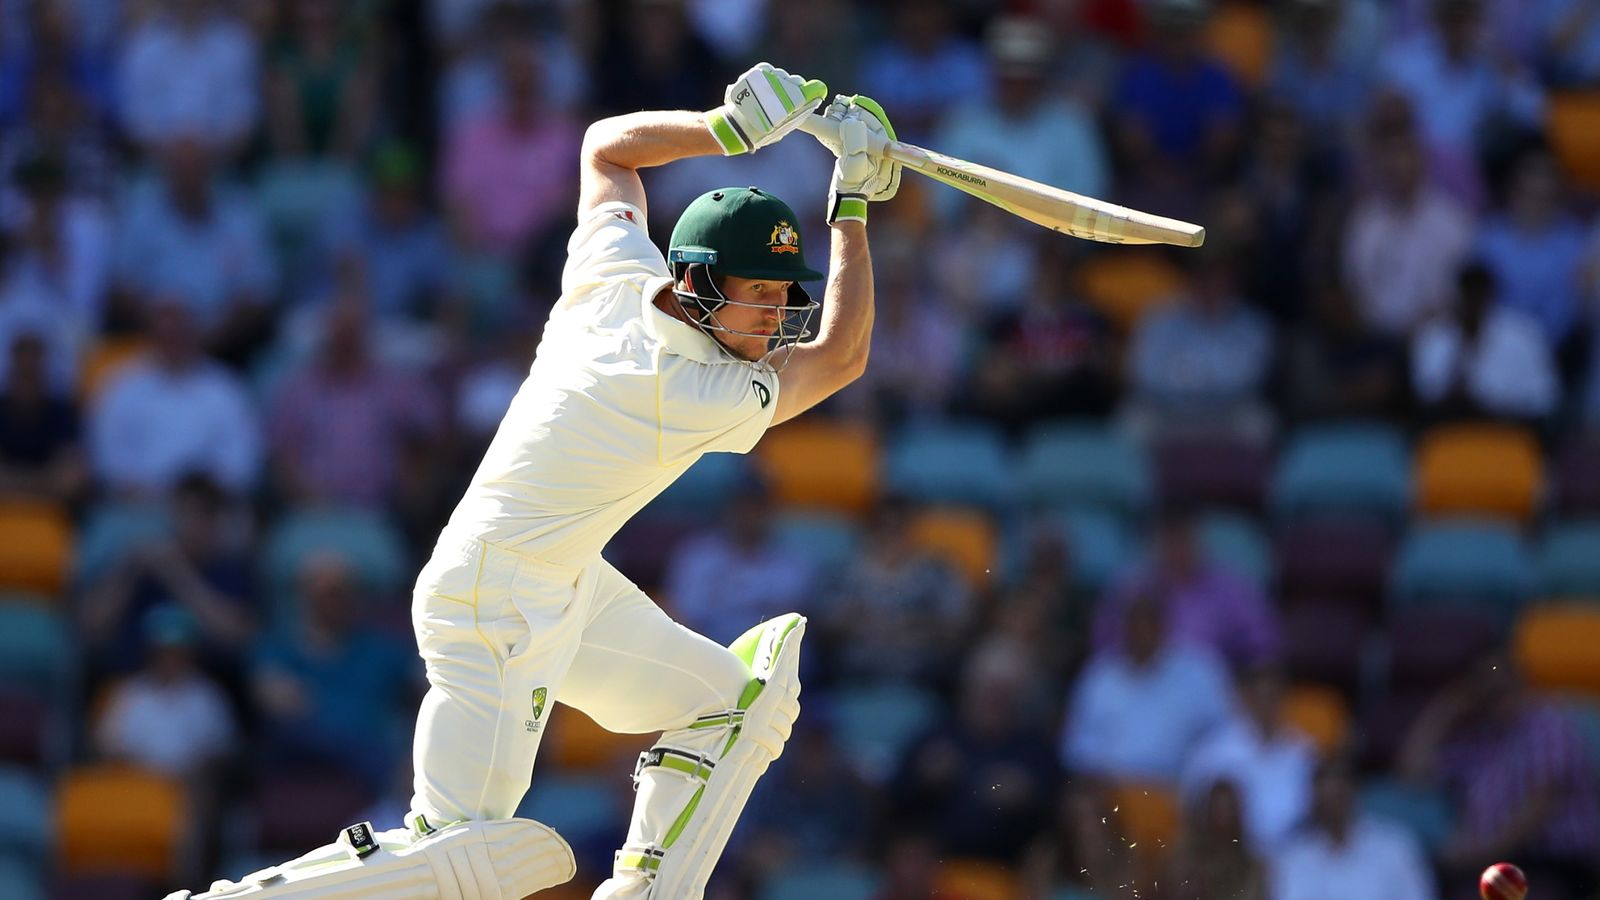 Young people don't care for test cricket anymore, say sports fans in Sky poll